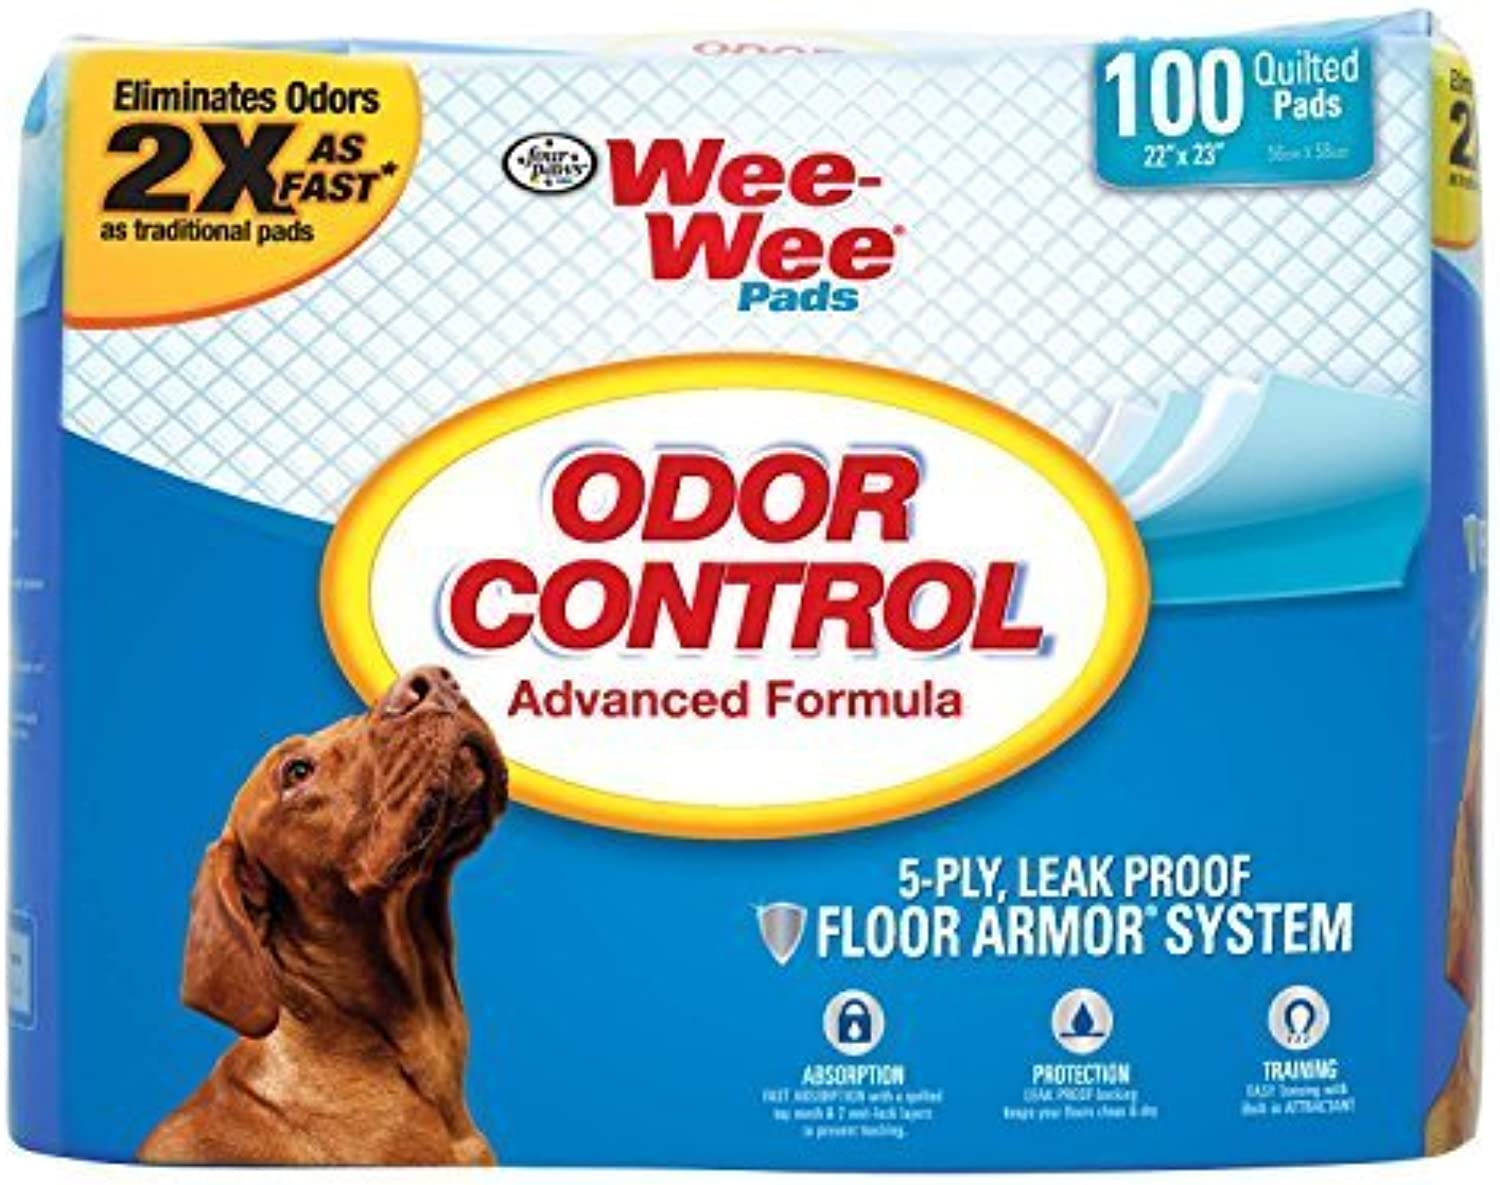 Four Paws WeeWee Odor Control Pads  100 Count ( 22   inch X 23  inch ) by WeeWee Products